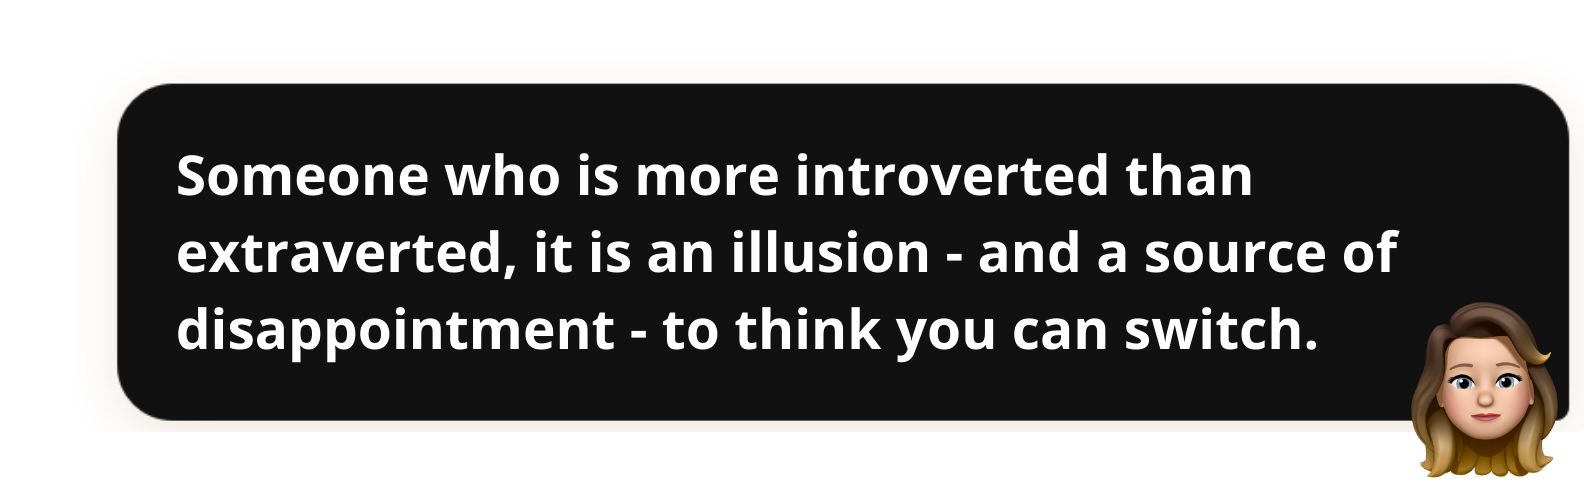 Interview Popwork-Violaine-du-Boucher-Someone who is more introverted than extraverted, it is an illusion - and a source of disappointment - to think you can switch.